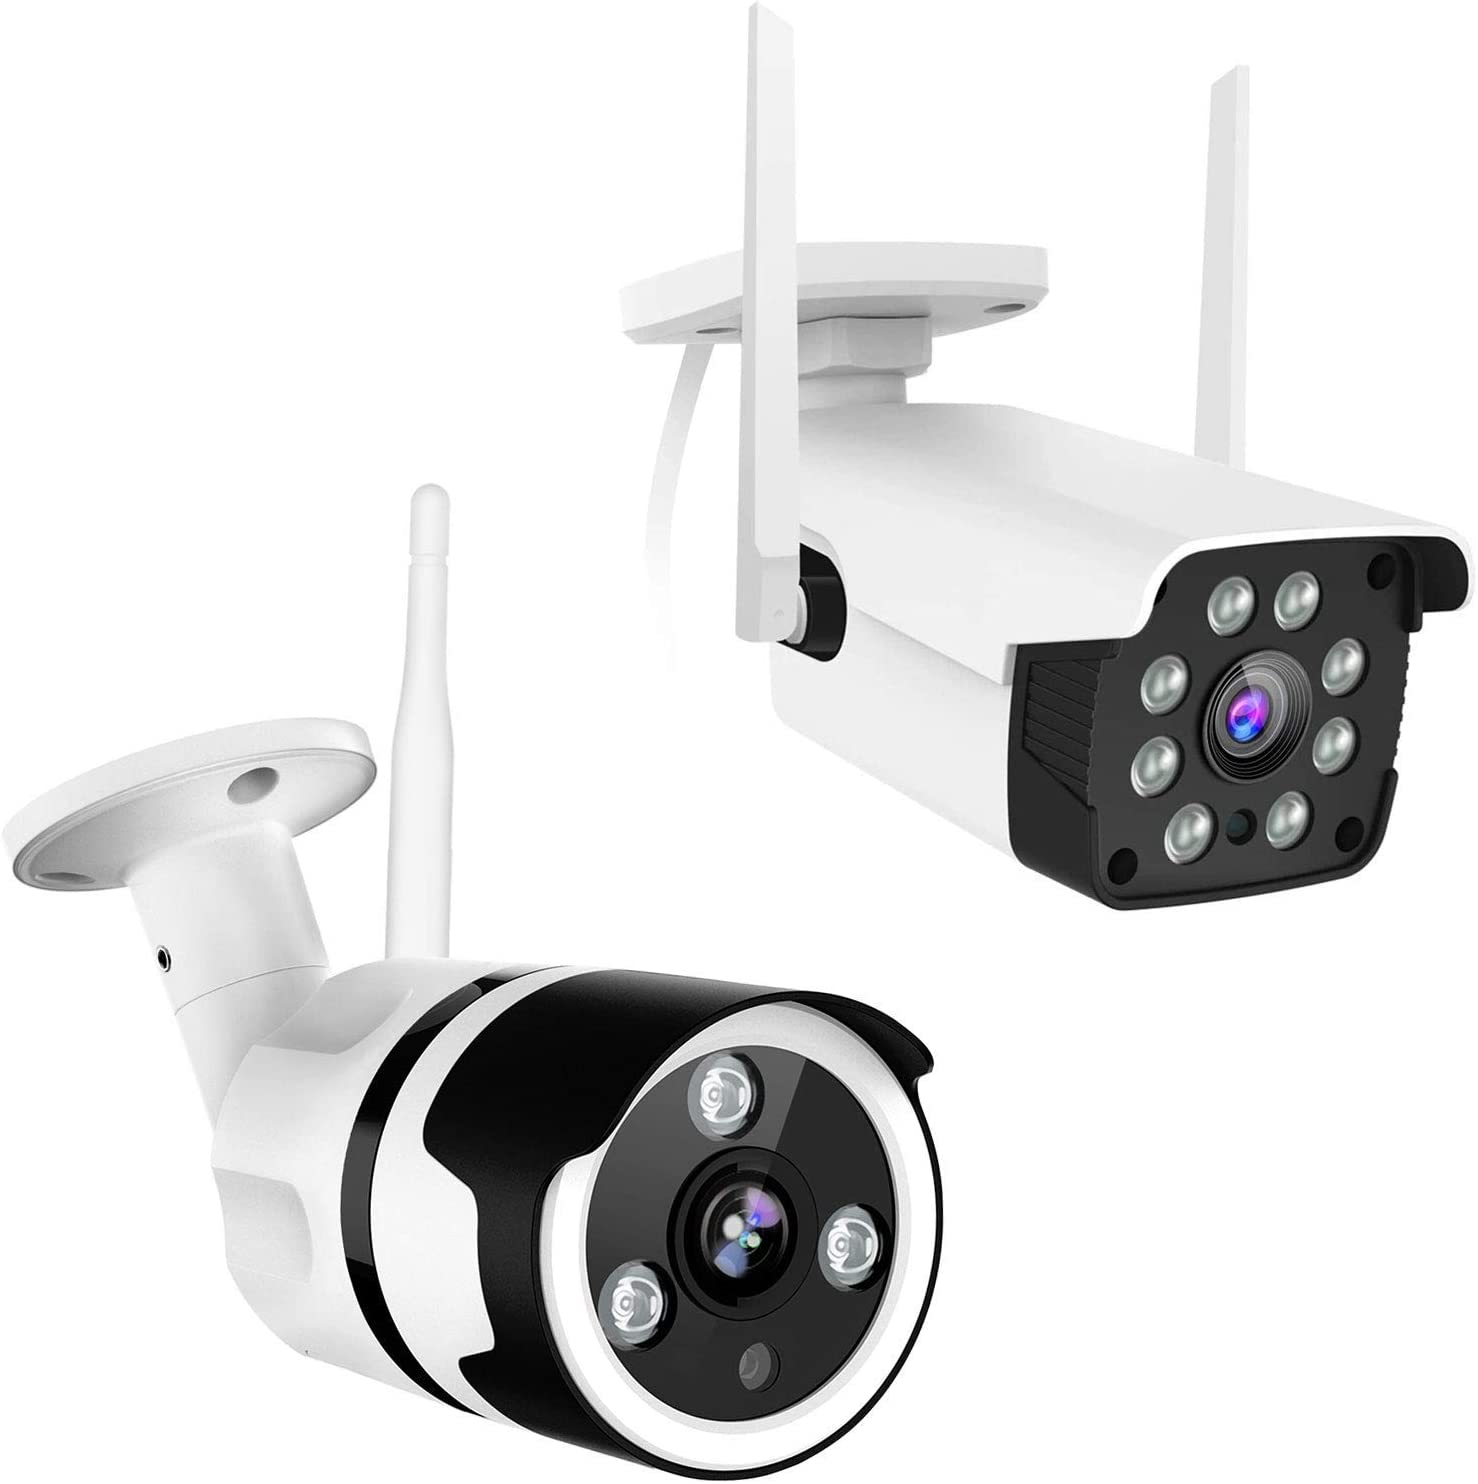 Security Camera Outdoor, 1080P WiFi Surveillance Camera for Home Security, with Night Vision, 8X Digital Zoom, A.I. Motion Detection, Instant Alert, IP66 Waterproof, 2-Way Audio, Cloud Storage/SD Card